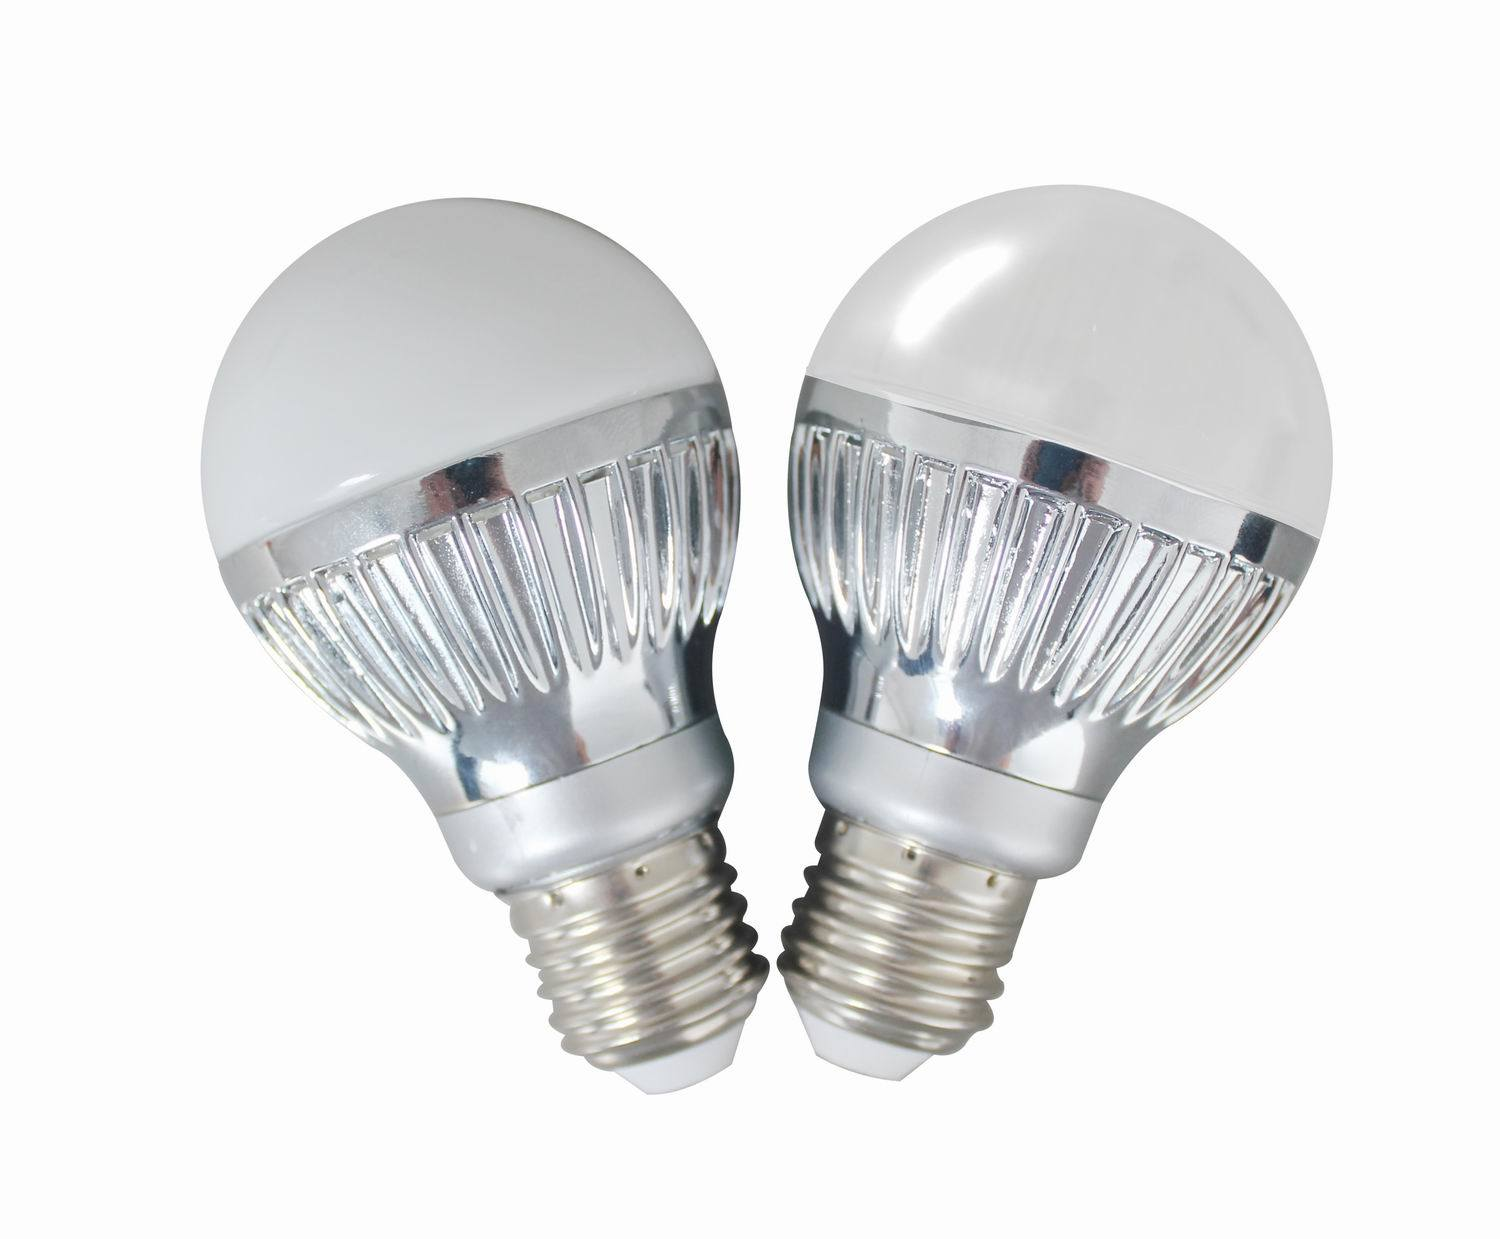 China Led Bulbs Hx Lb60w 7 1w 220v Photos Pictures Made In